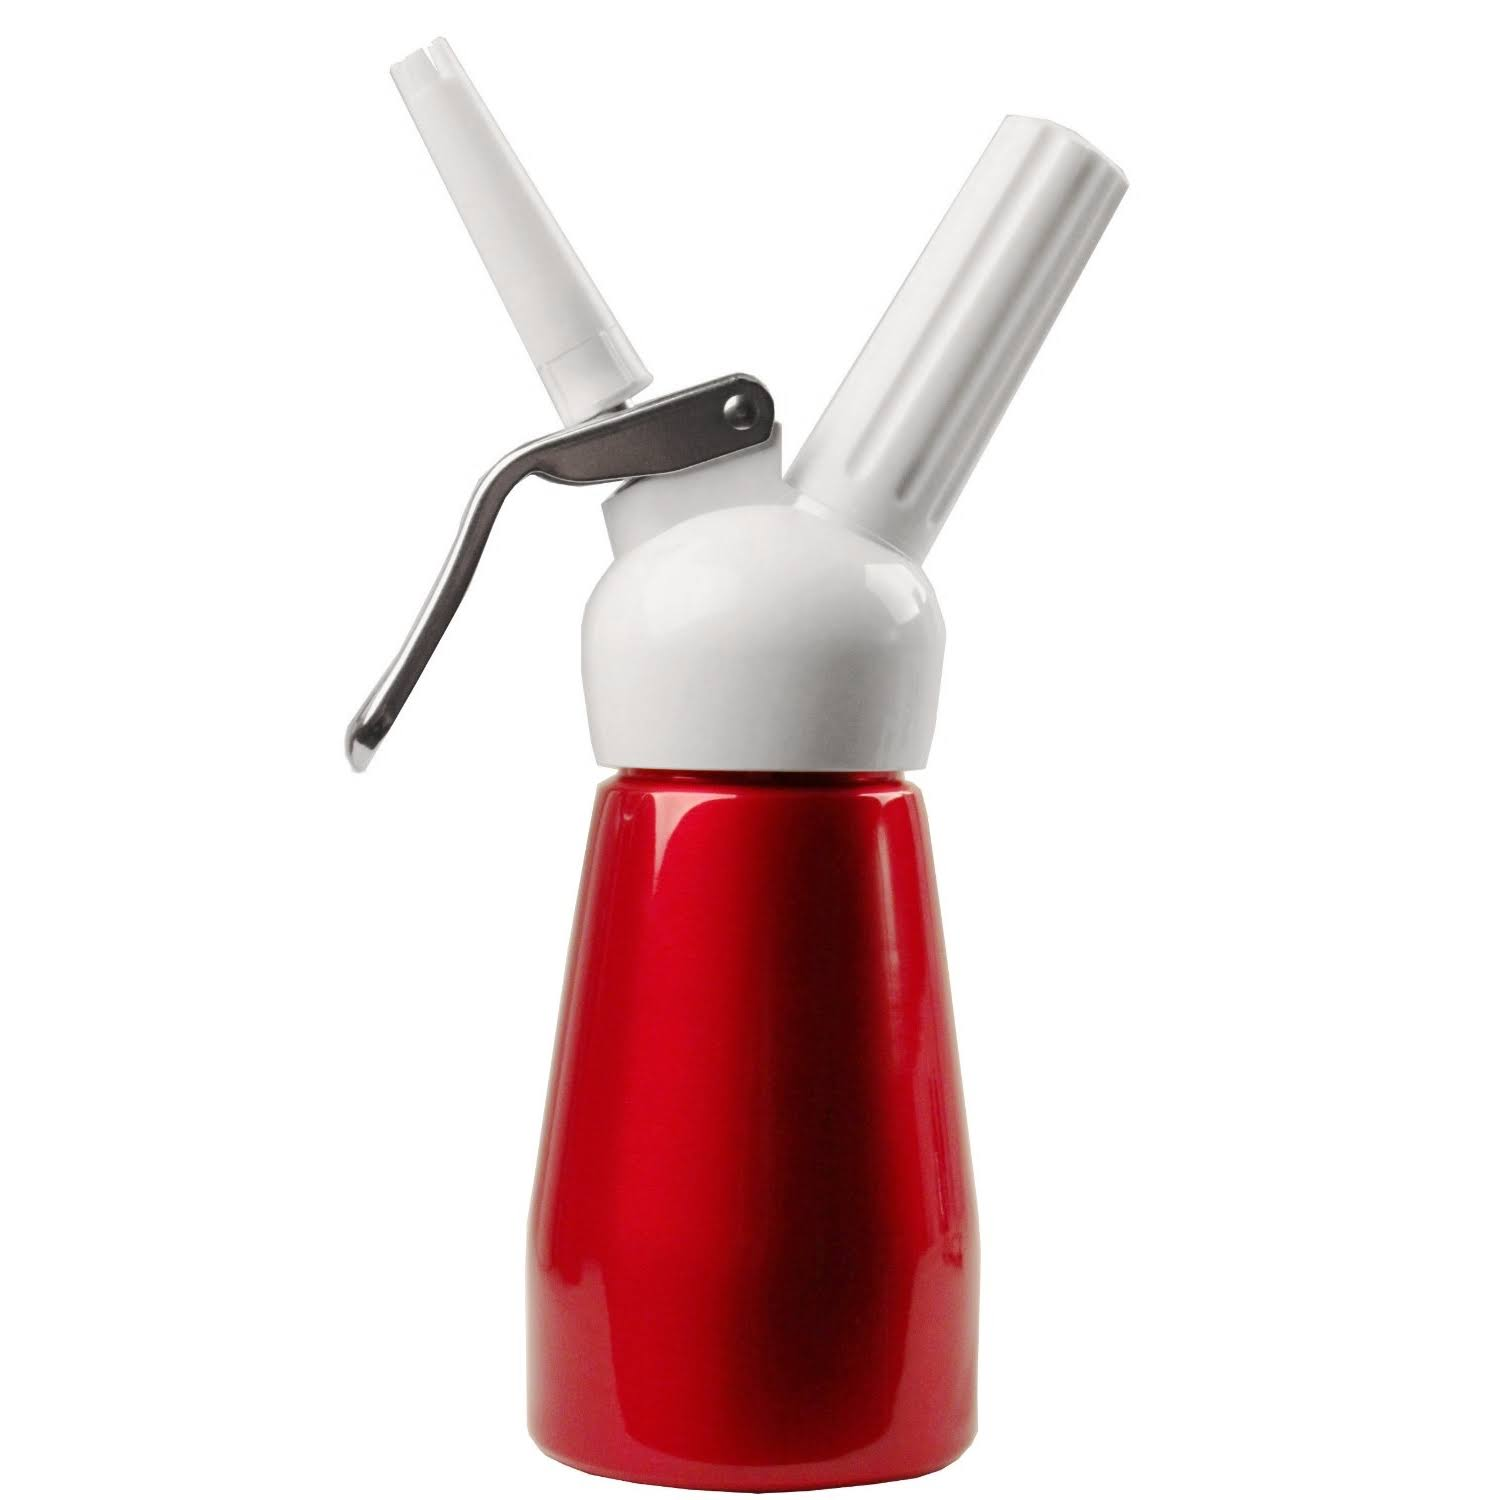 BestWhip Red Cream Whipper, 0.25 Liter